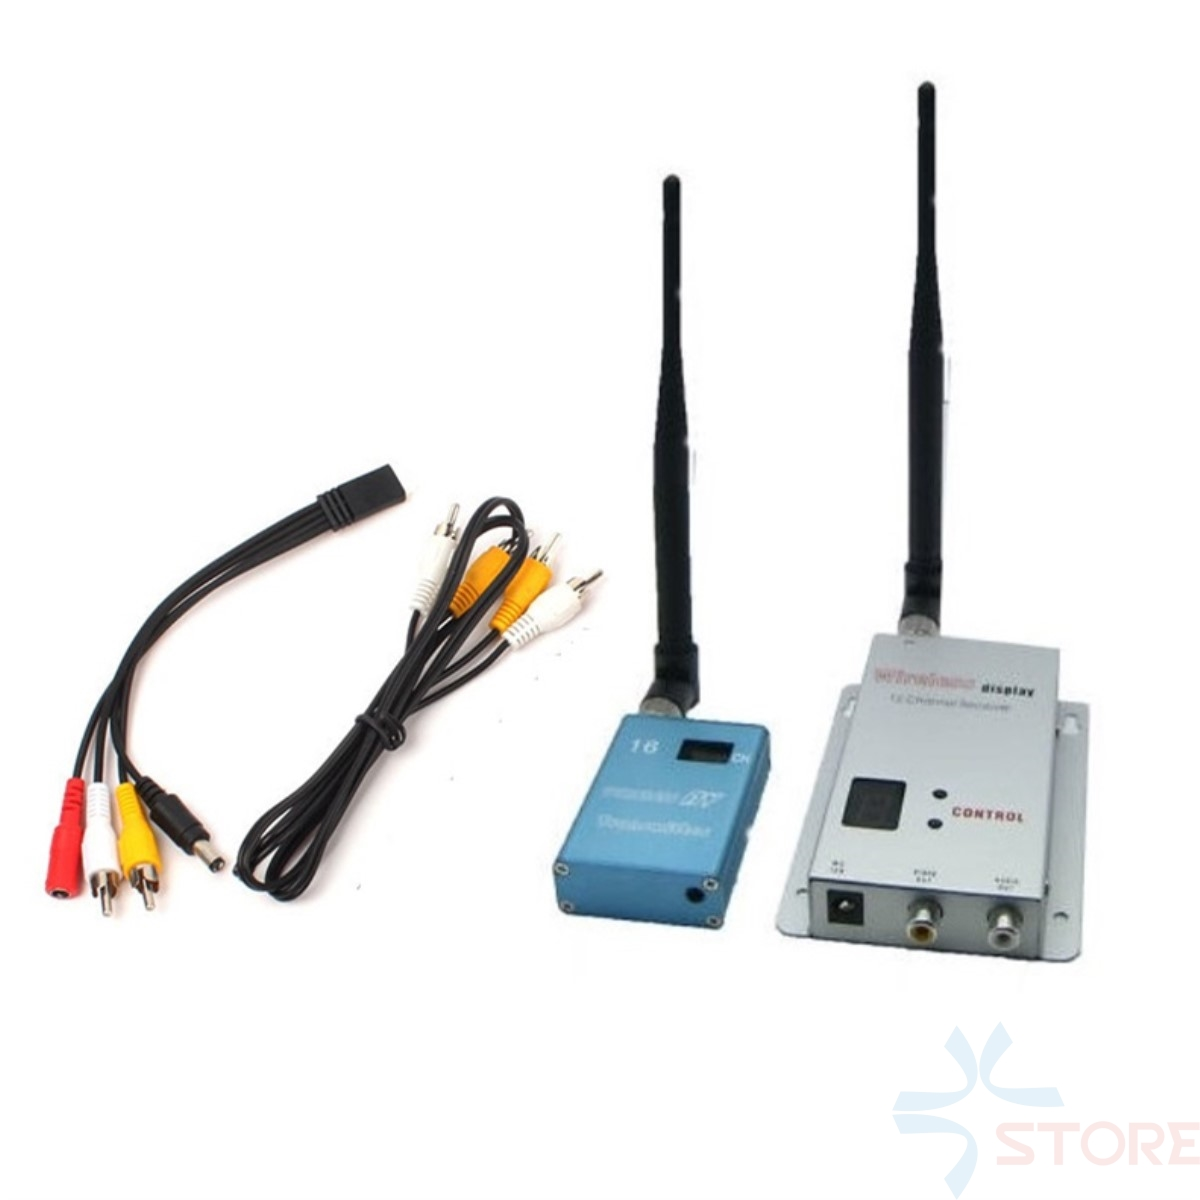 1.2GHz 700mW 15CH Wireless Room-to-Room Audio/Video Transmitter Receiver Set for FPV Photography 1 2g 100mw wireless audio video transceiver and receiver combo for fpv